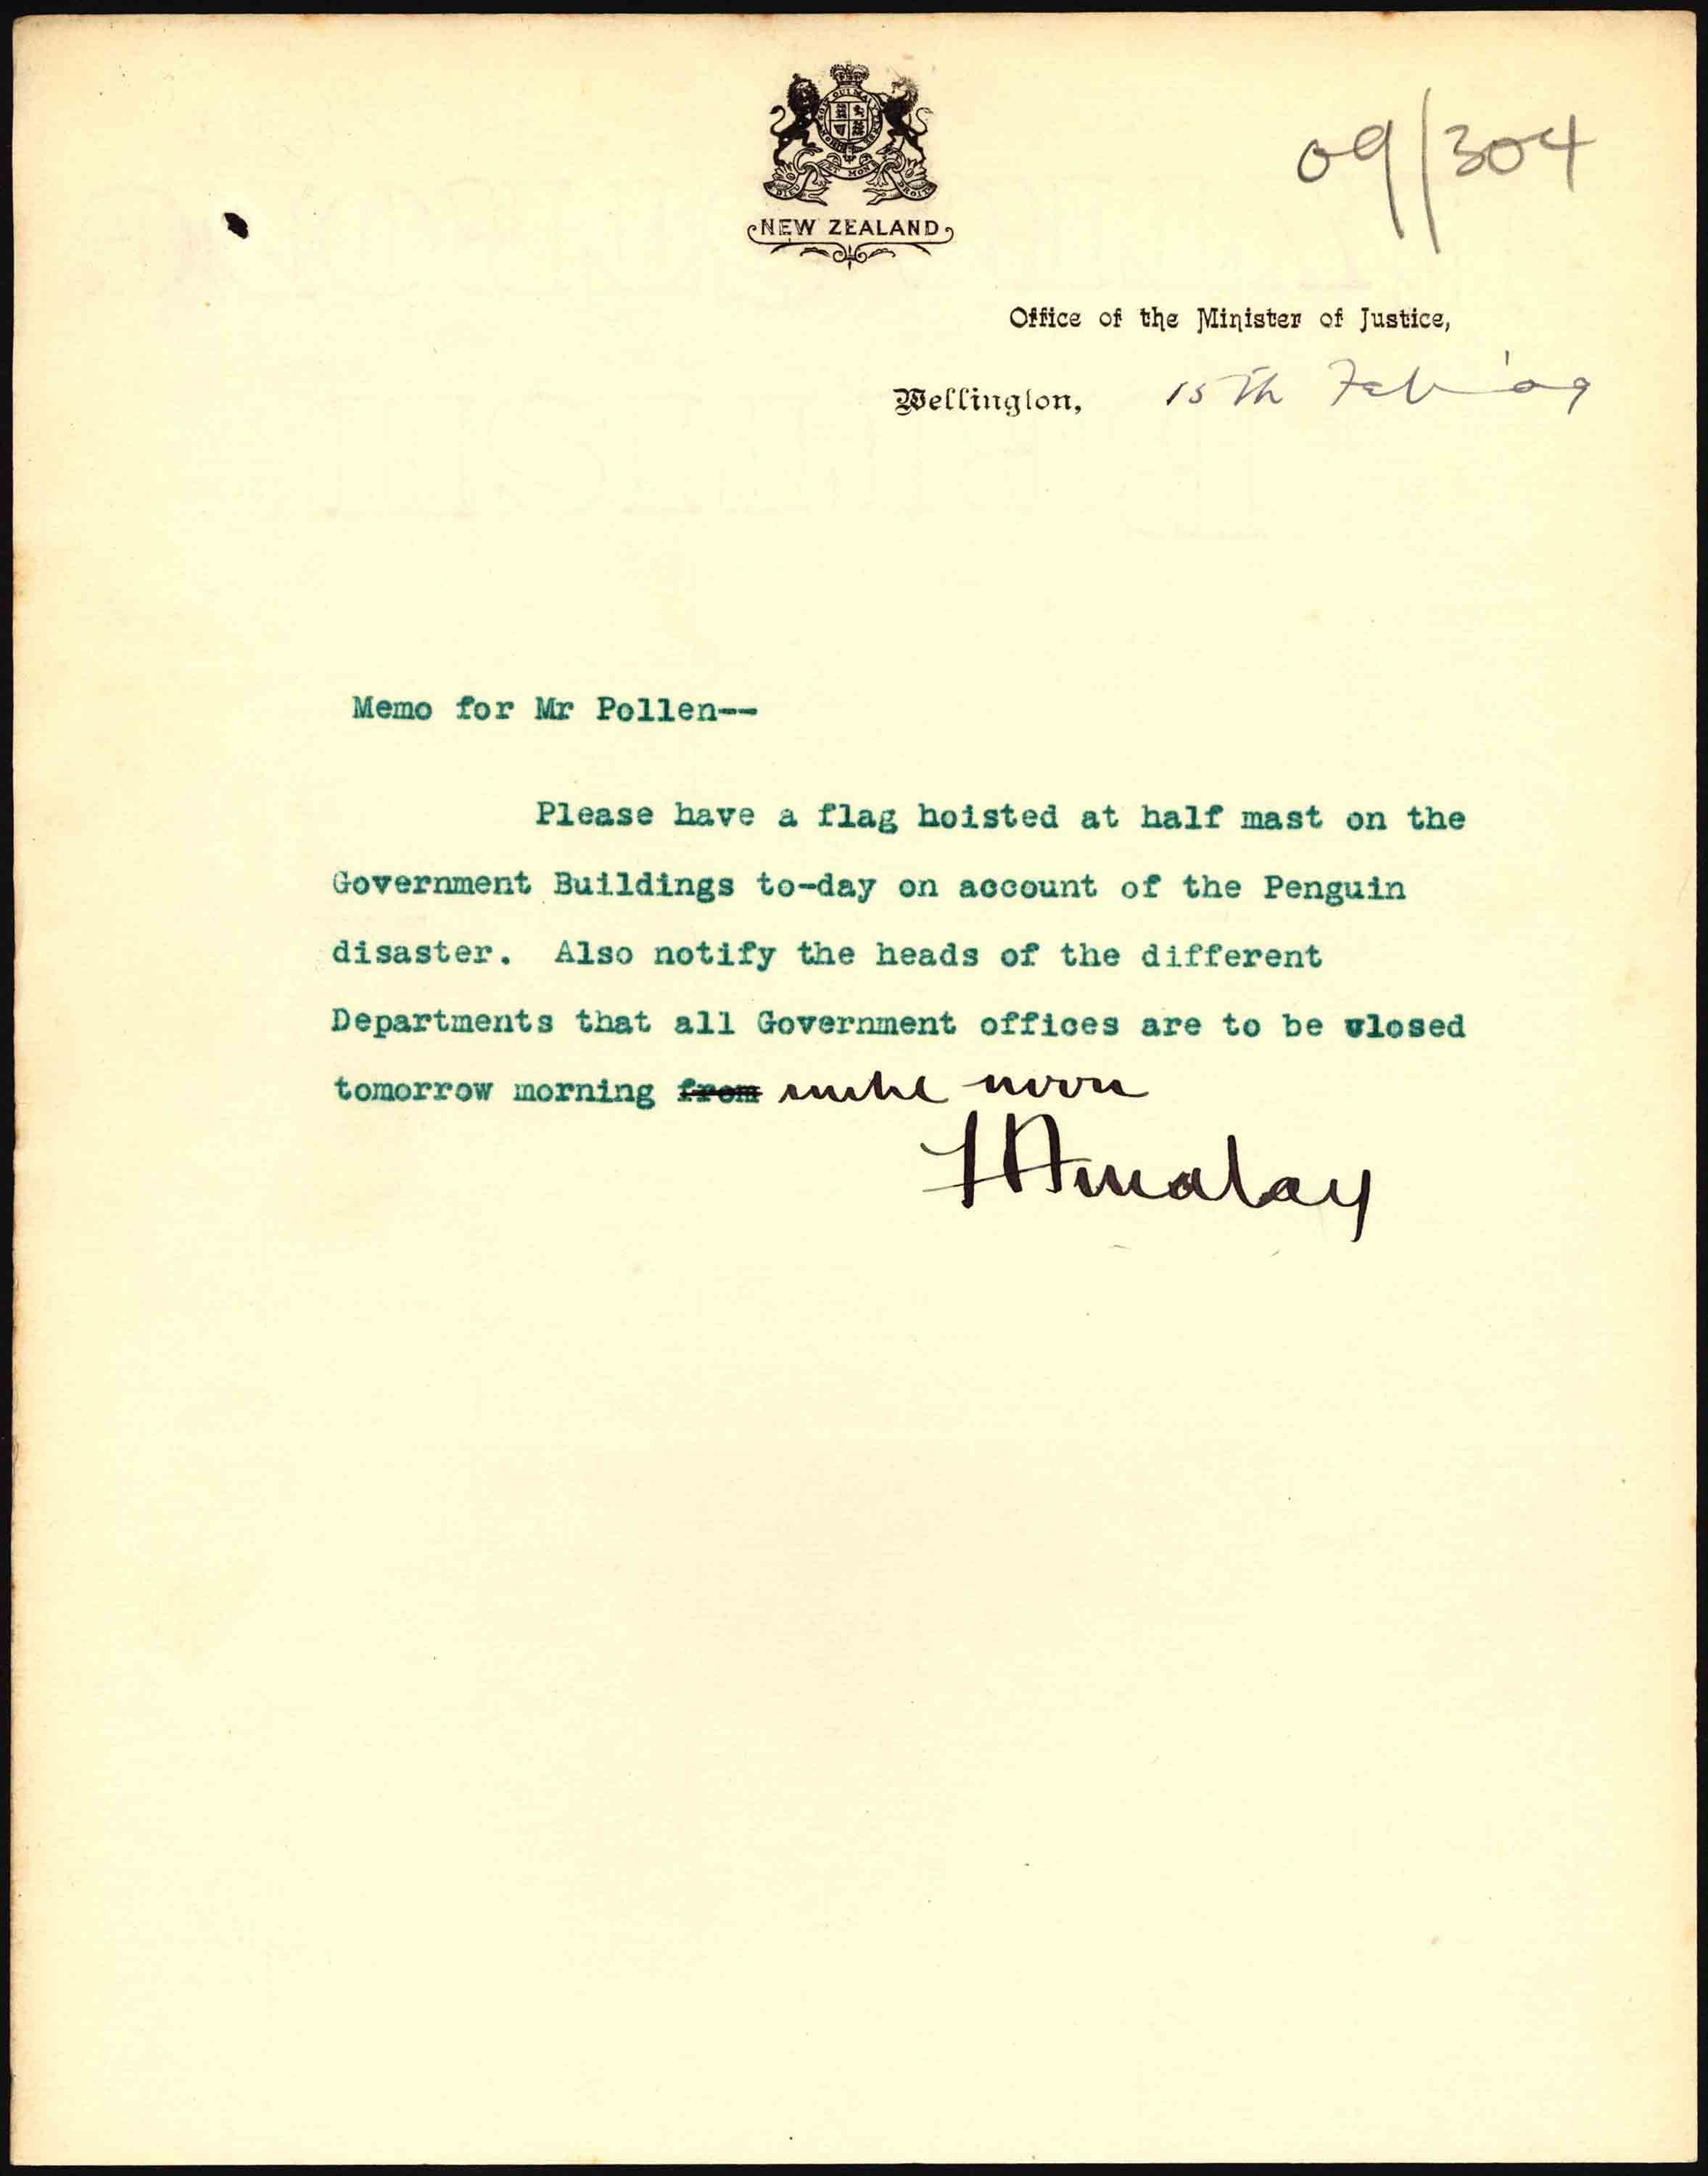 Notification of a half-day for the funeral of the victims